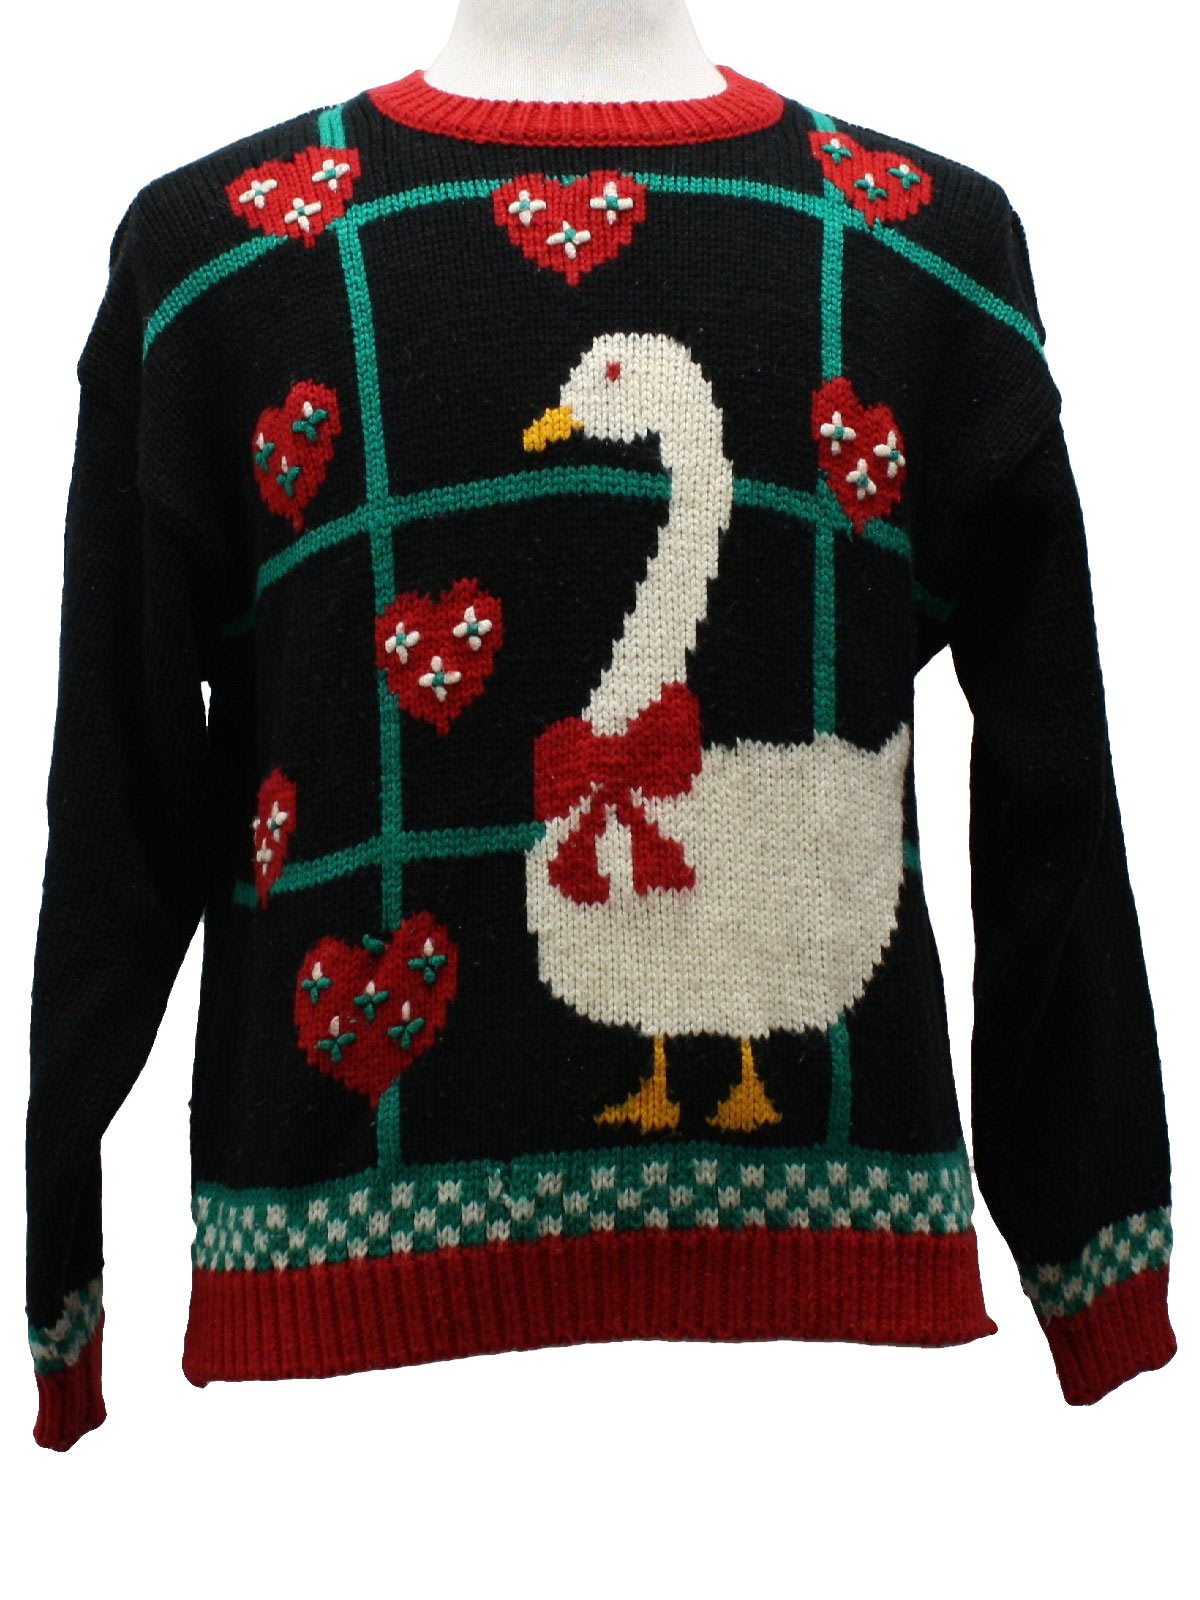 1980s Robinsons Ugly Christmas Goose Sweater 80s